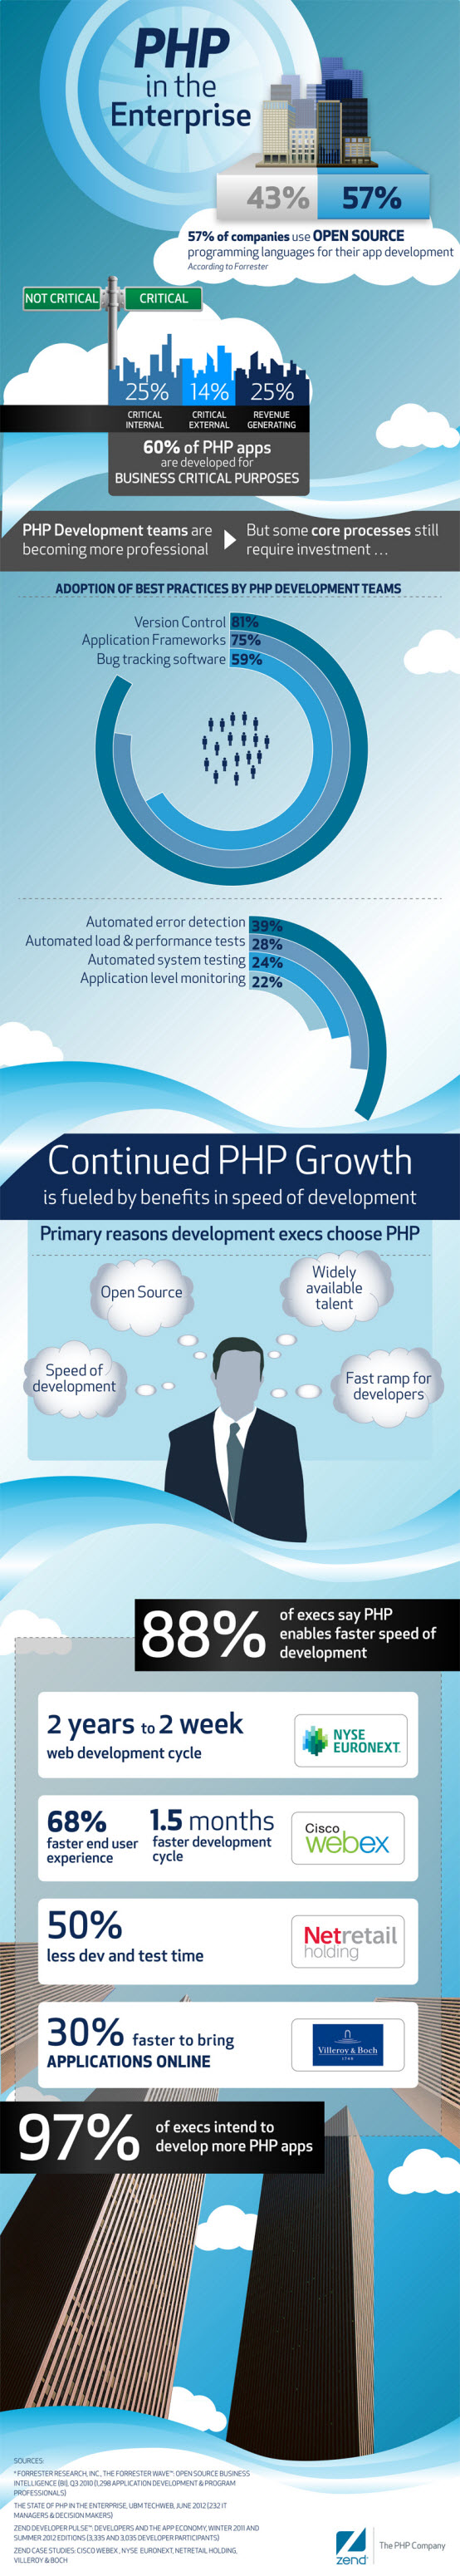 php-in-the-enterprise-infographic